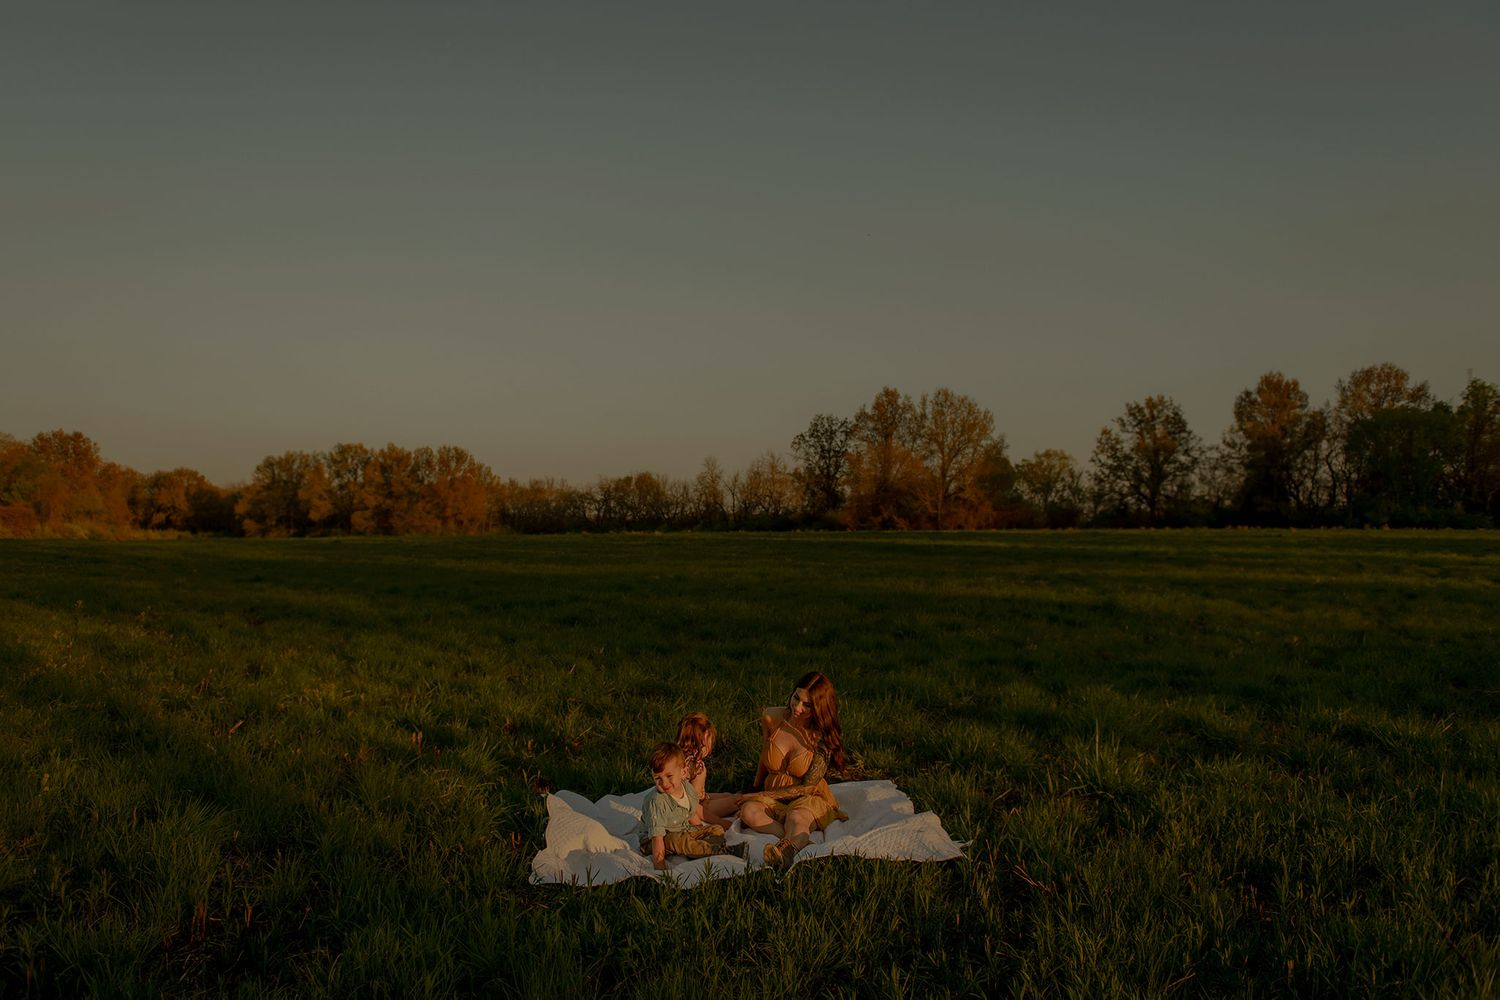 mom and kids sitting on blanket in a field